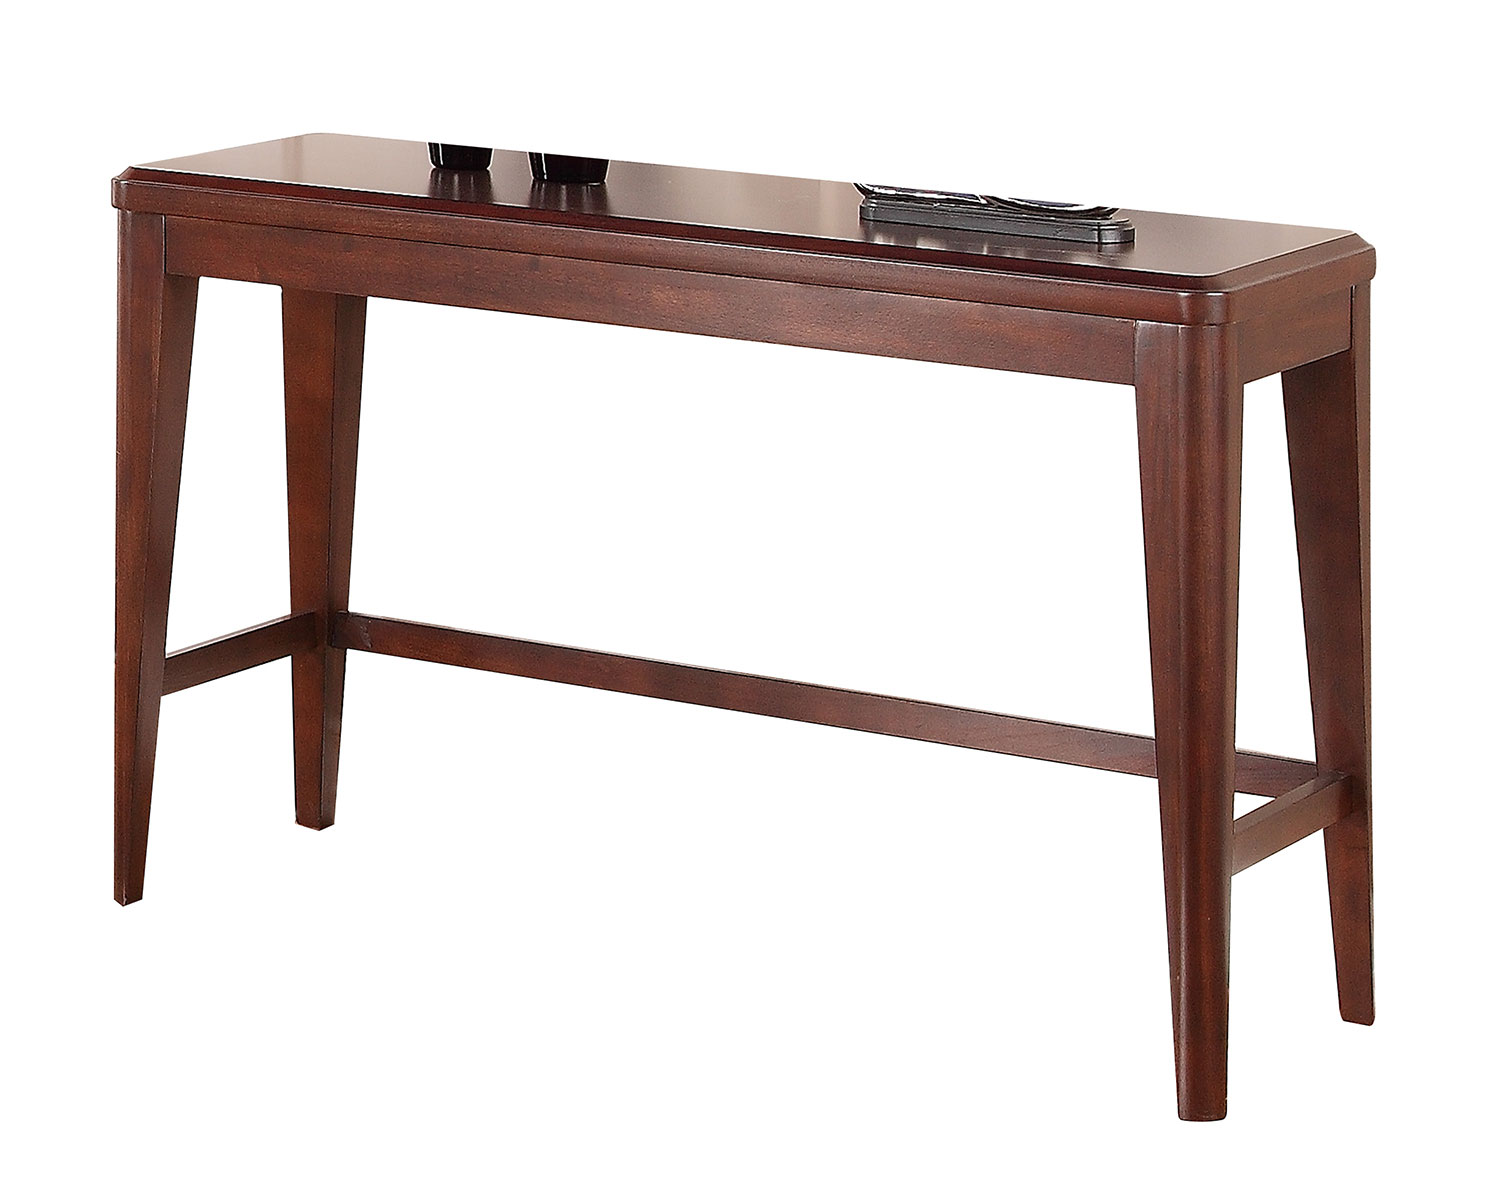 Homelegance Beaumont Sofa Table